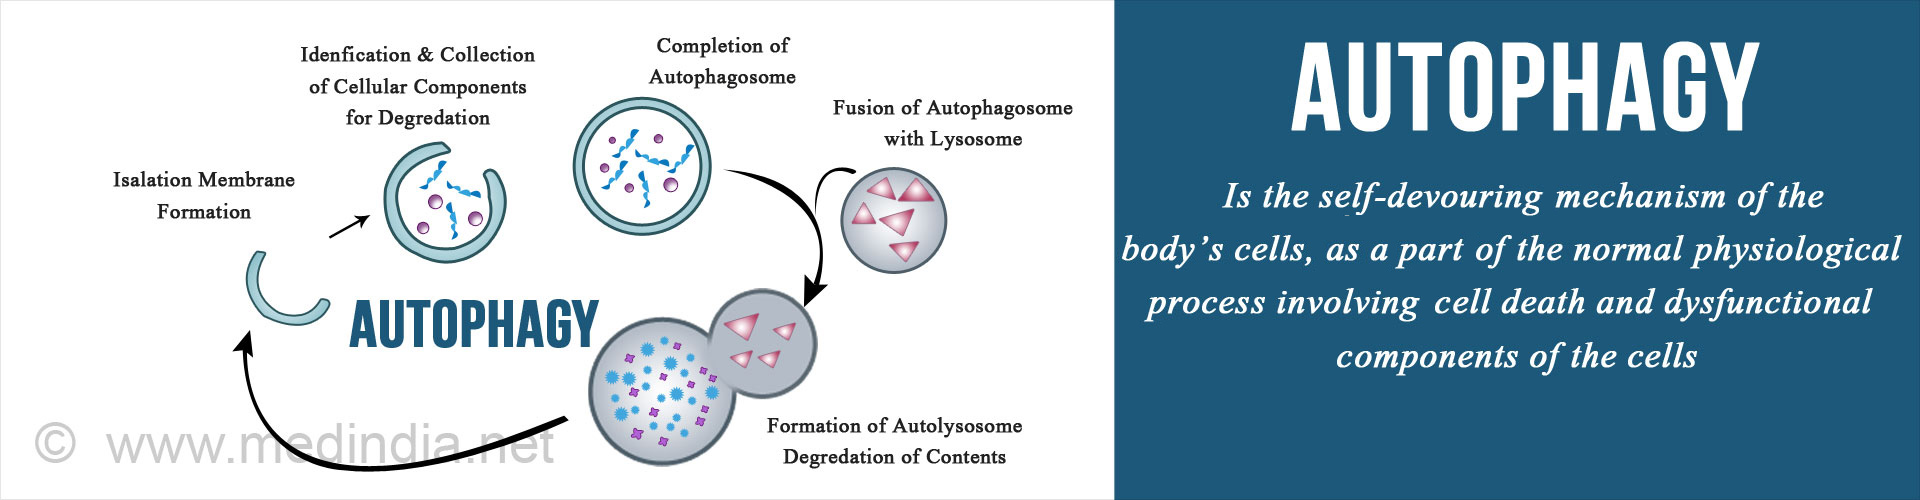 Autophagy: Self-Repair Mechanism at Cellular Level